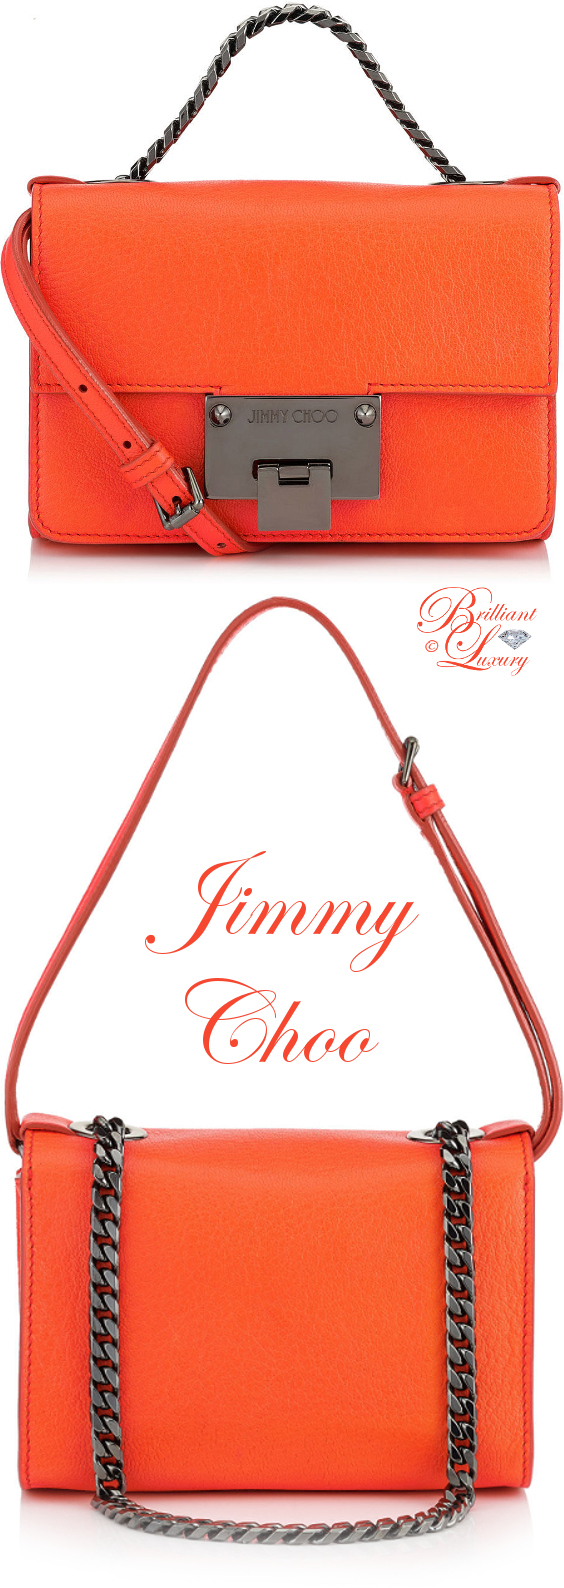 Brilliant Luxury ♦ Jimmy Choo Rebel Soft Mini Bag